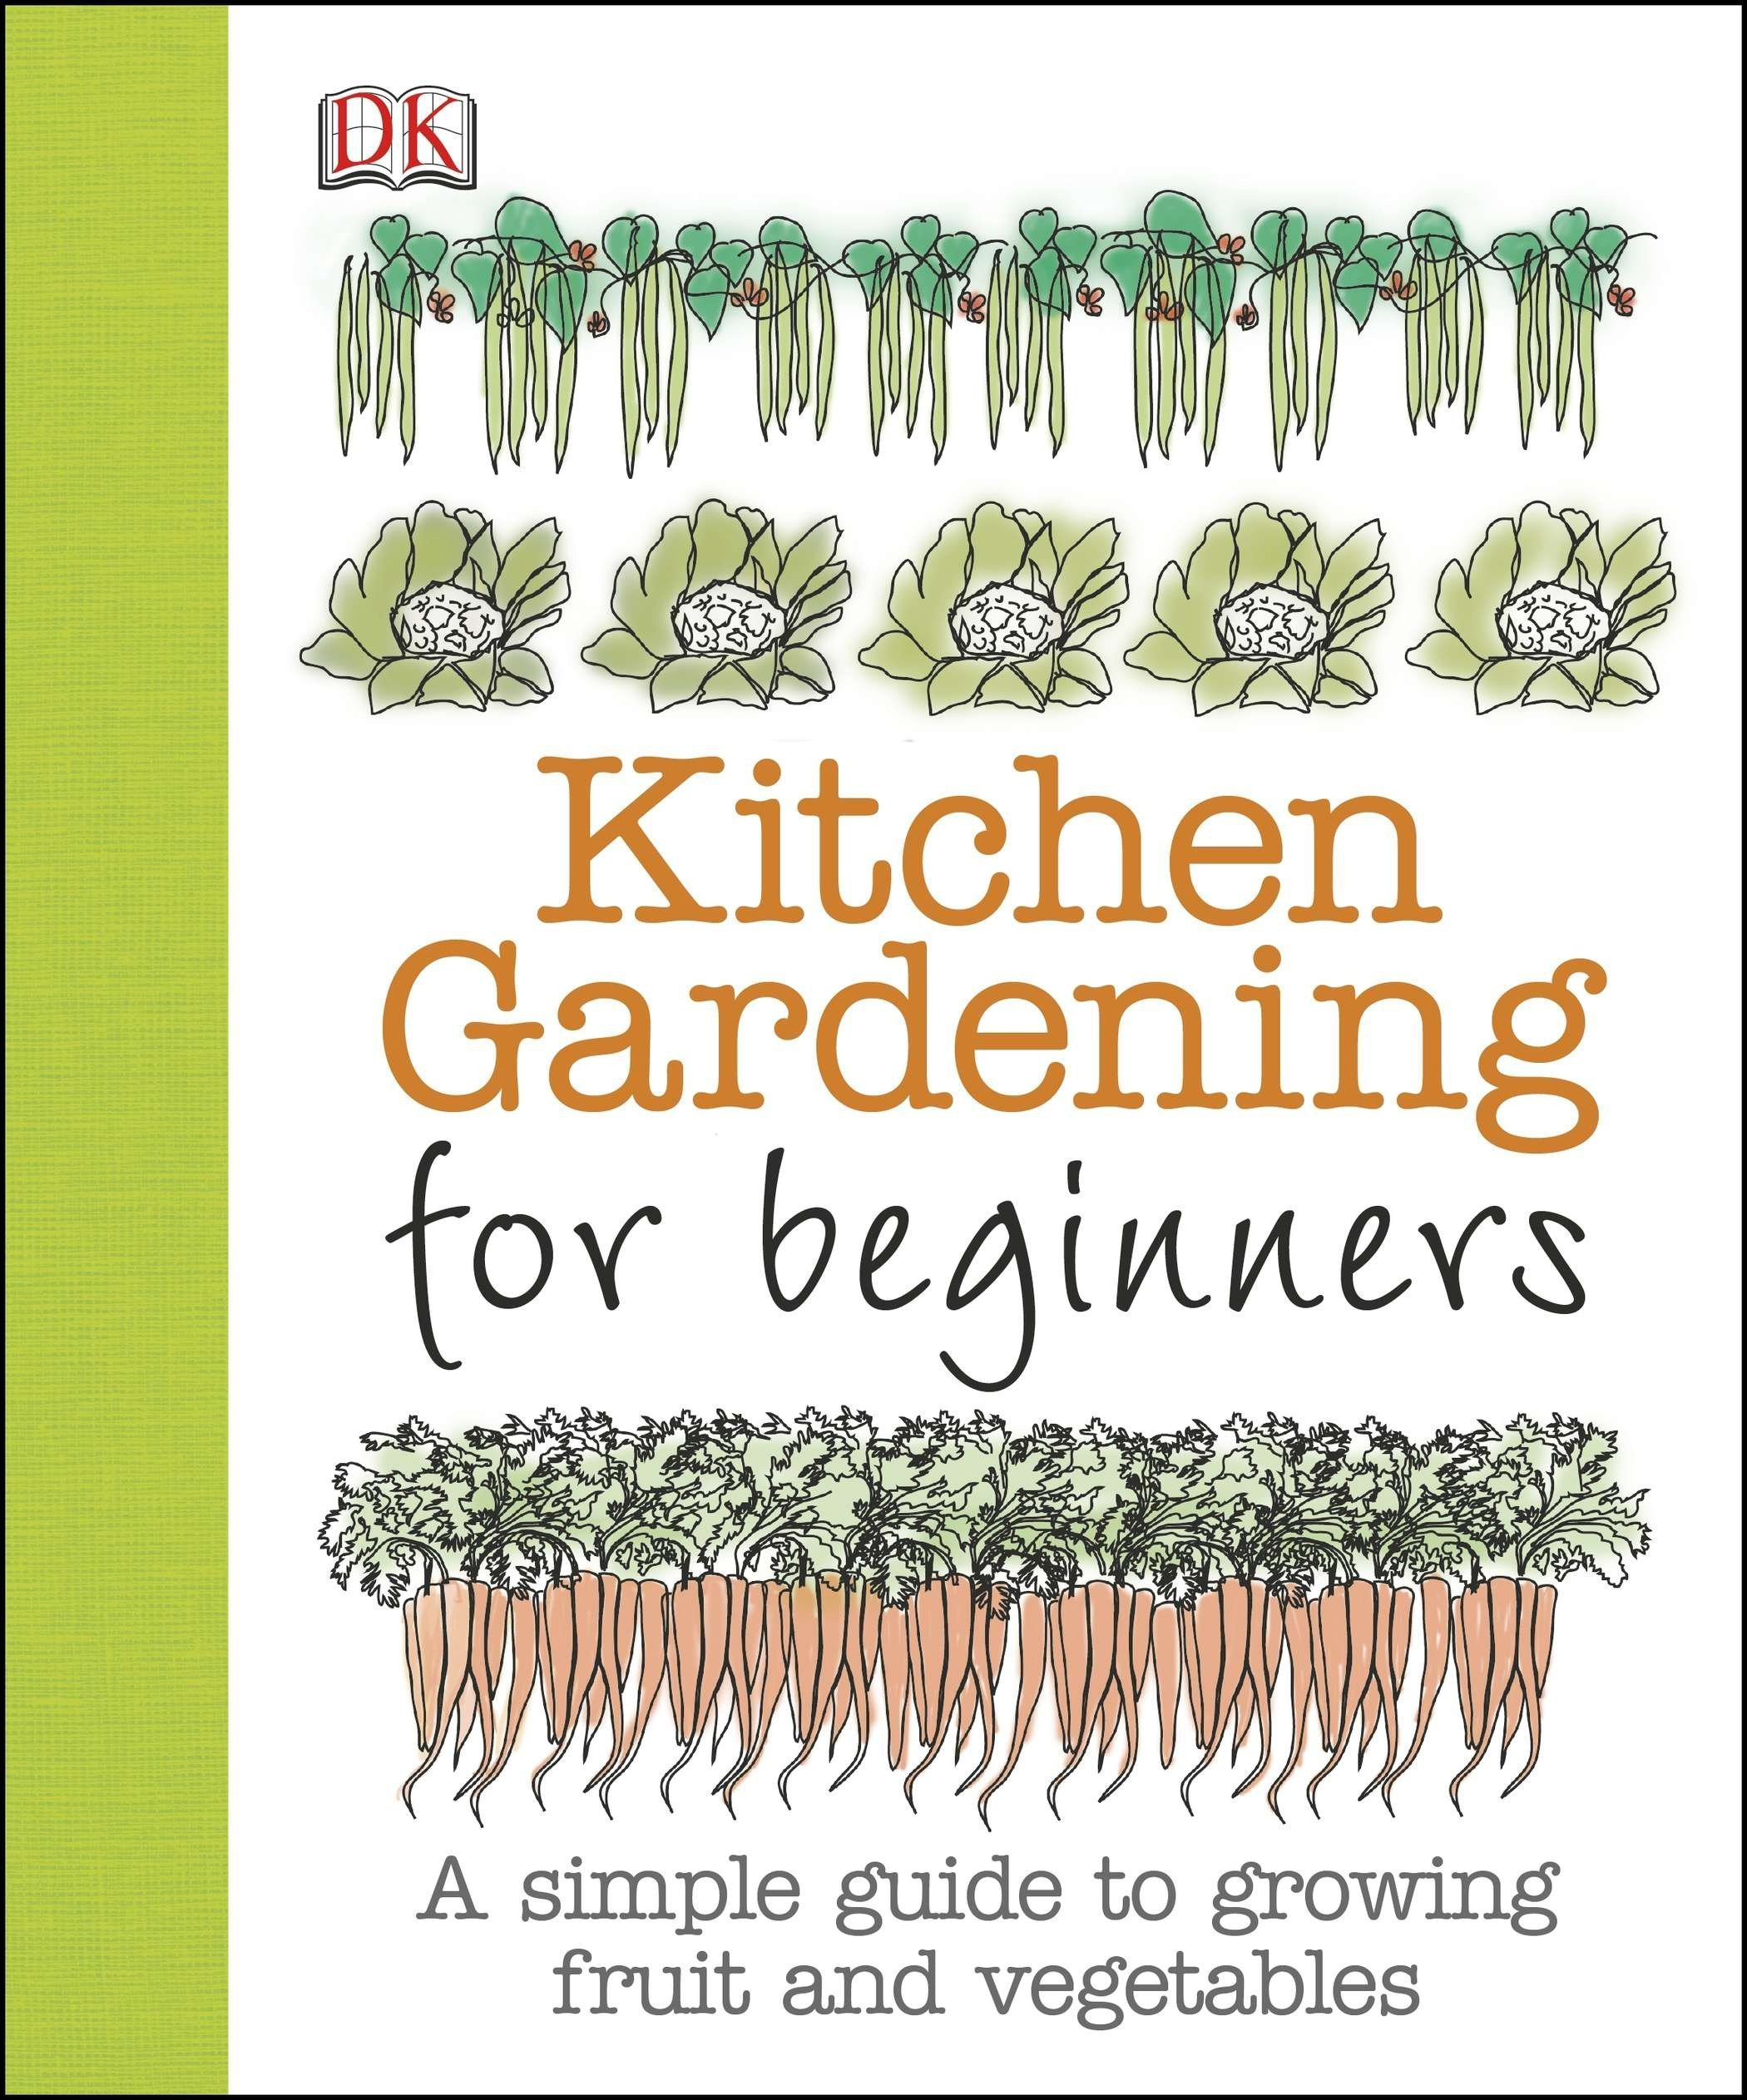 Kitchen Gardening for Beginners: A Simple Guide to Growing Fruit and Vegetables by DK